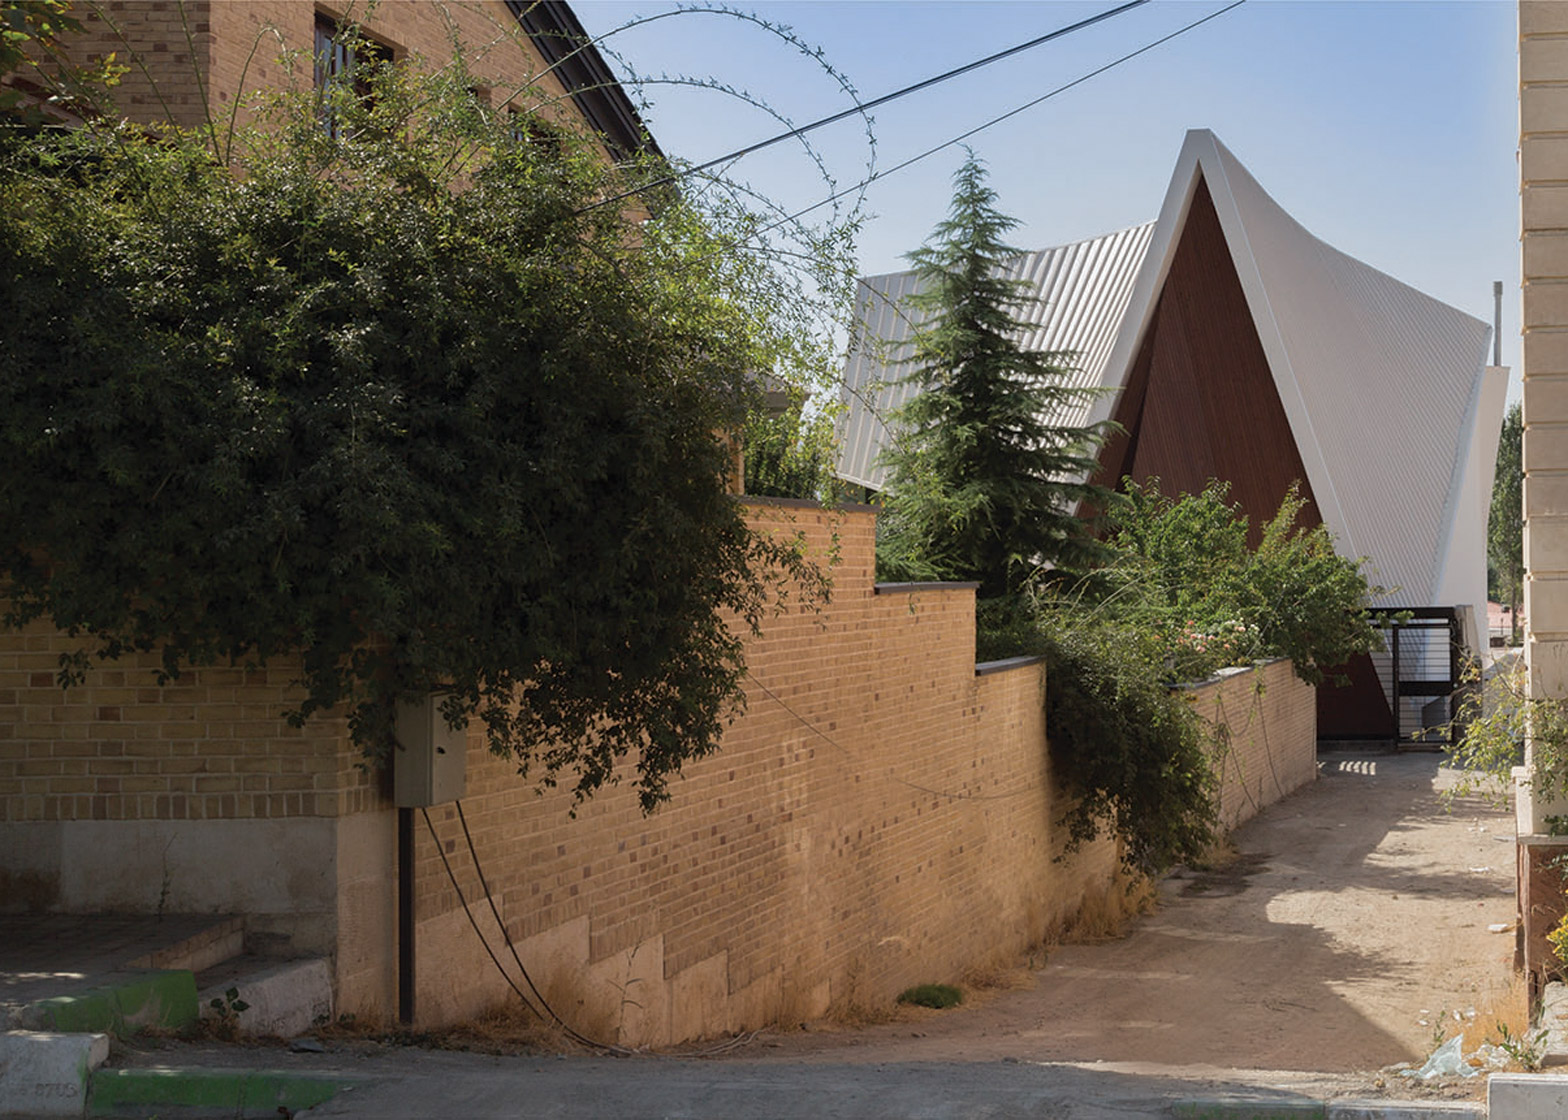 Villa for Younger Brother, Iran, by Next Office